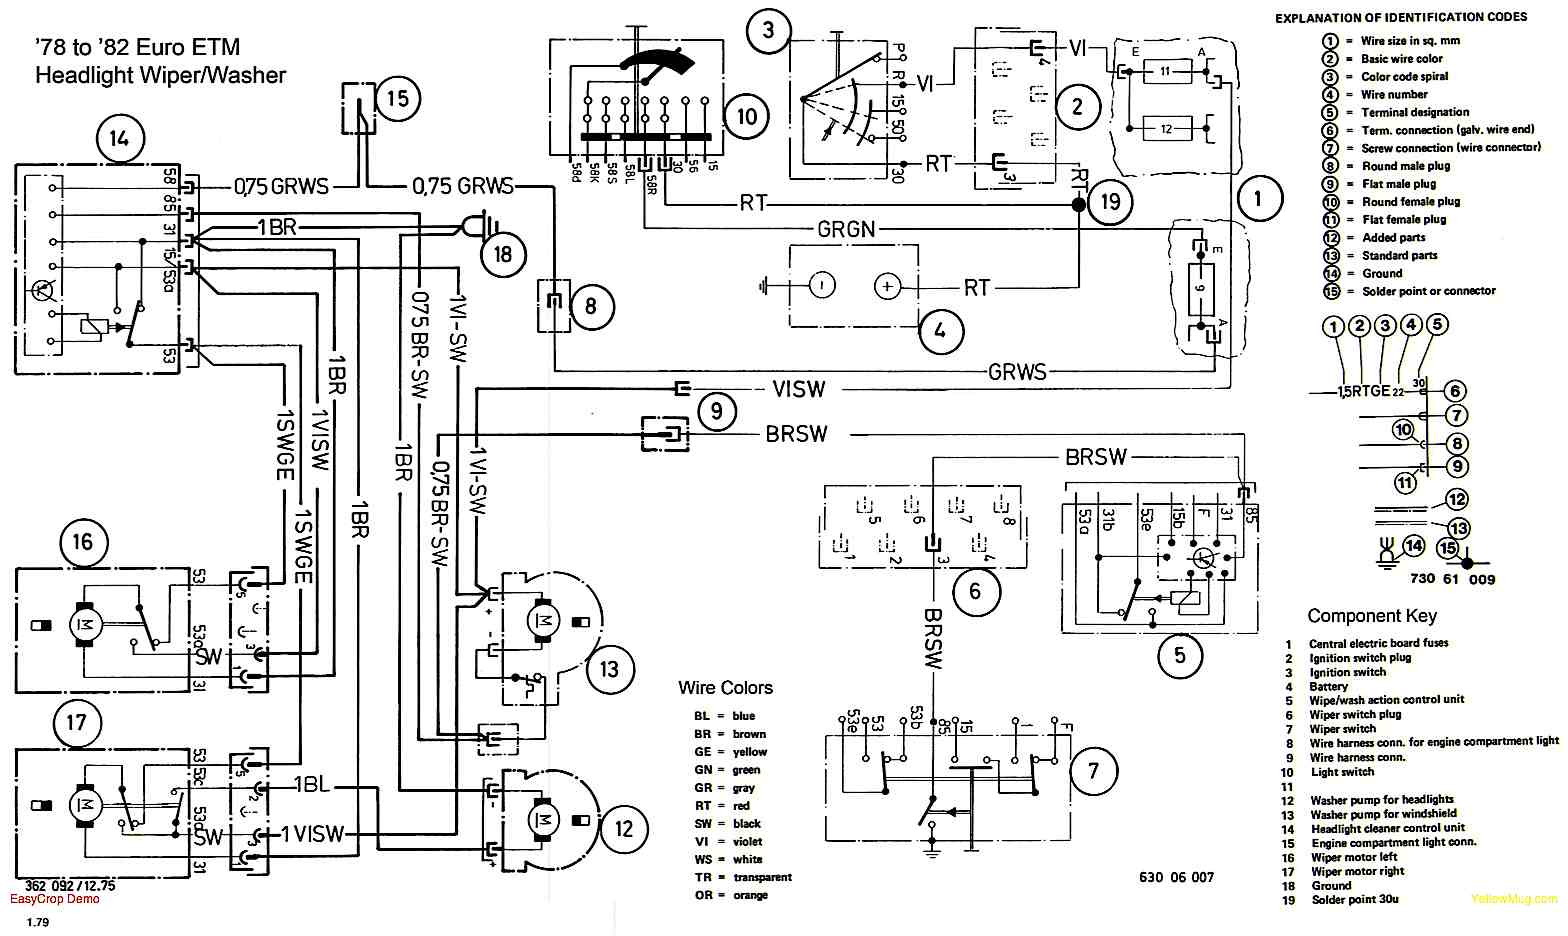 need the ece european wiring diagram bmw e36 electric fan install